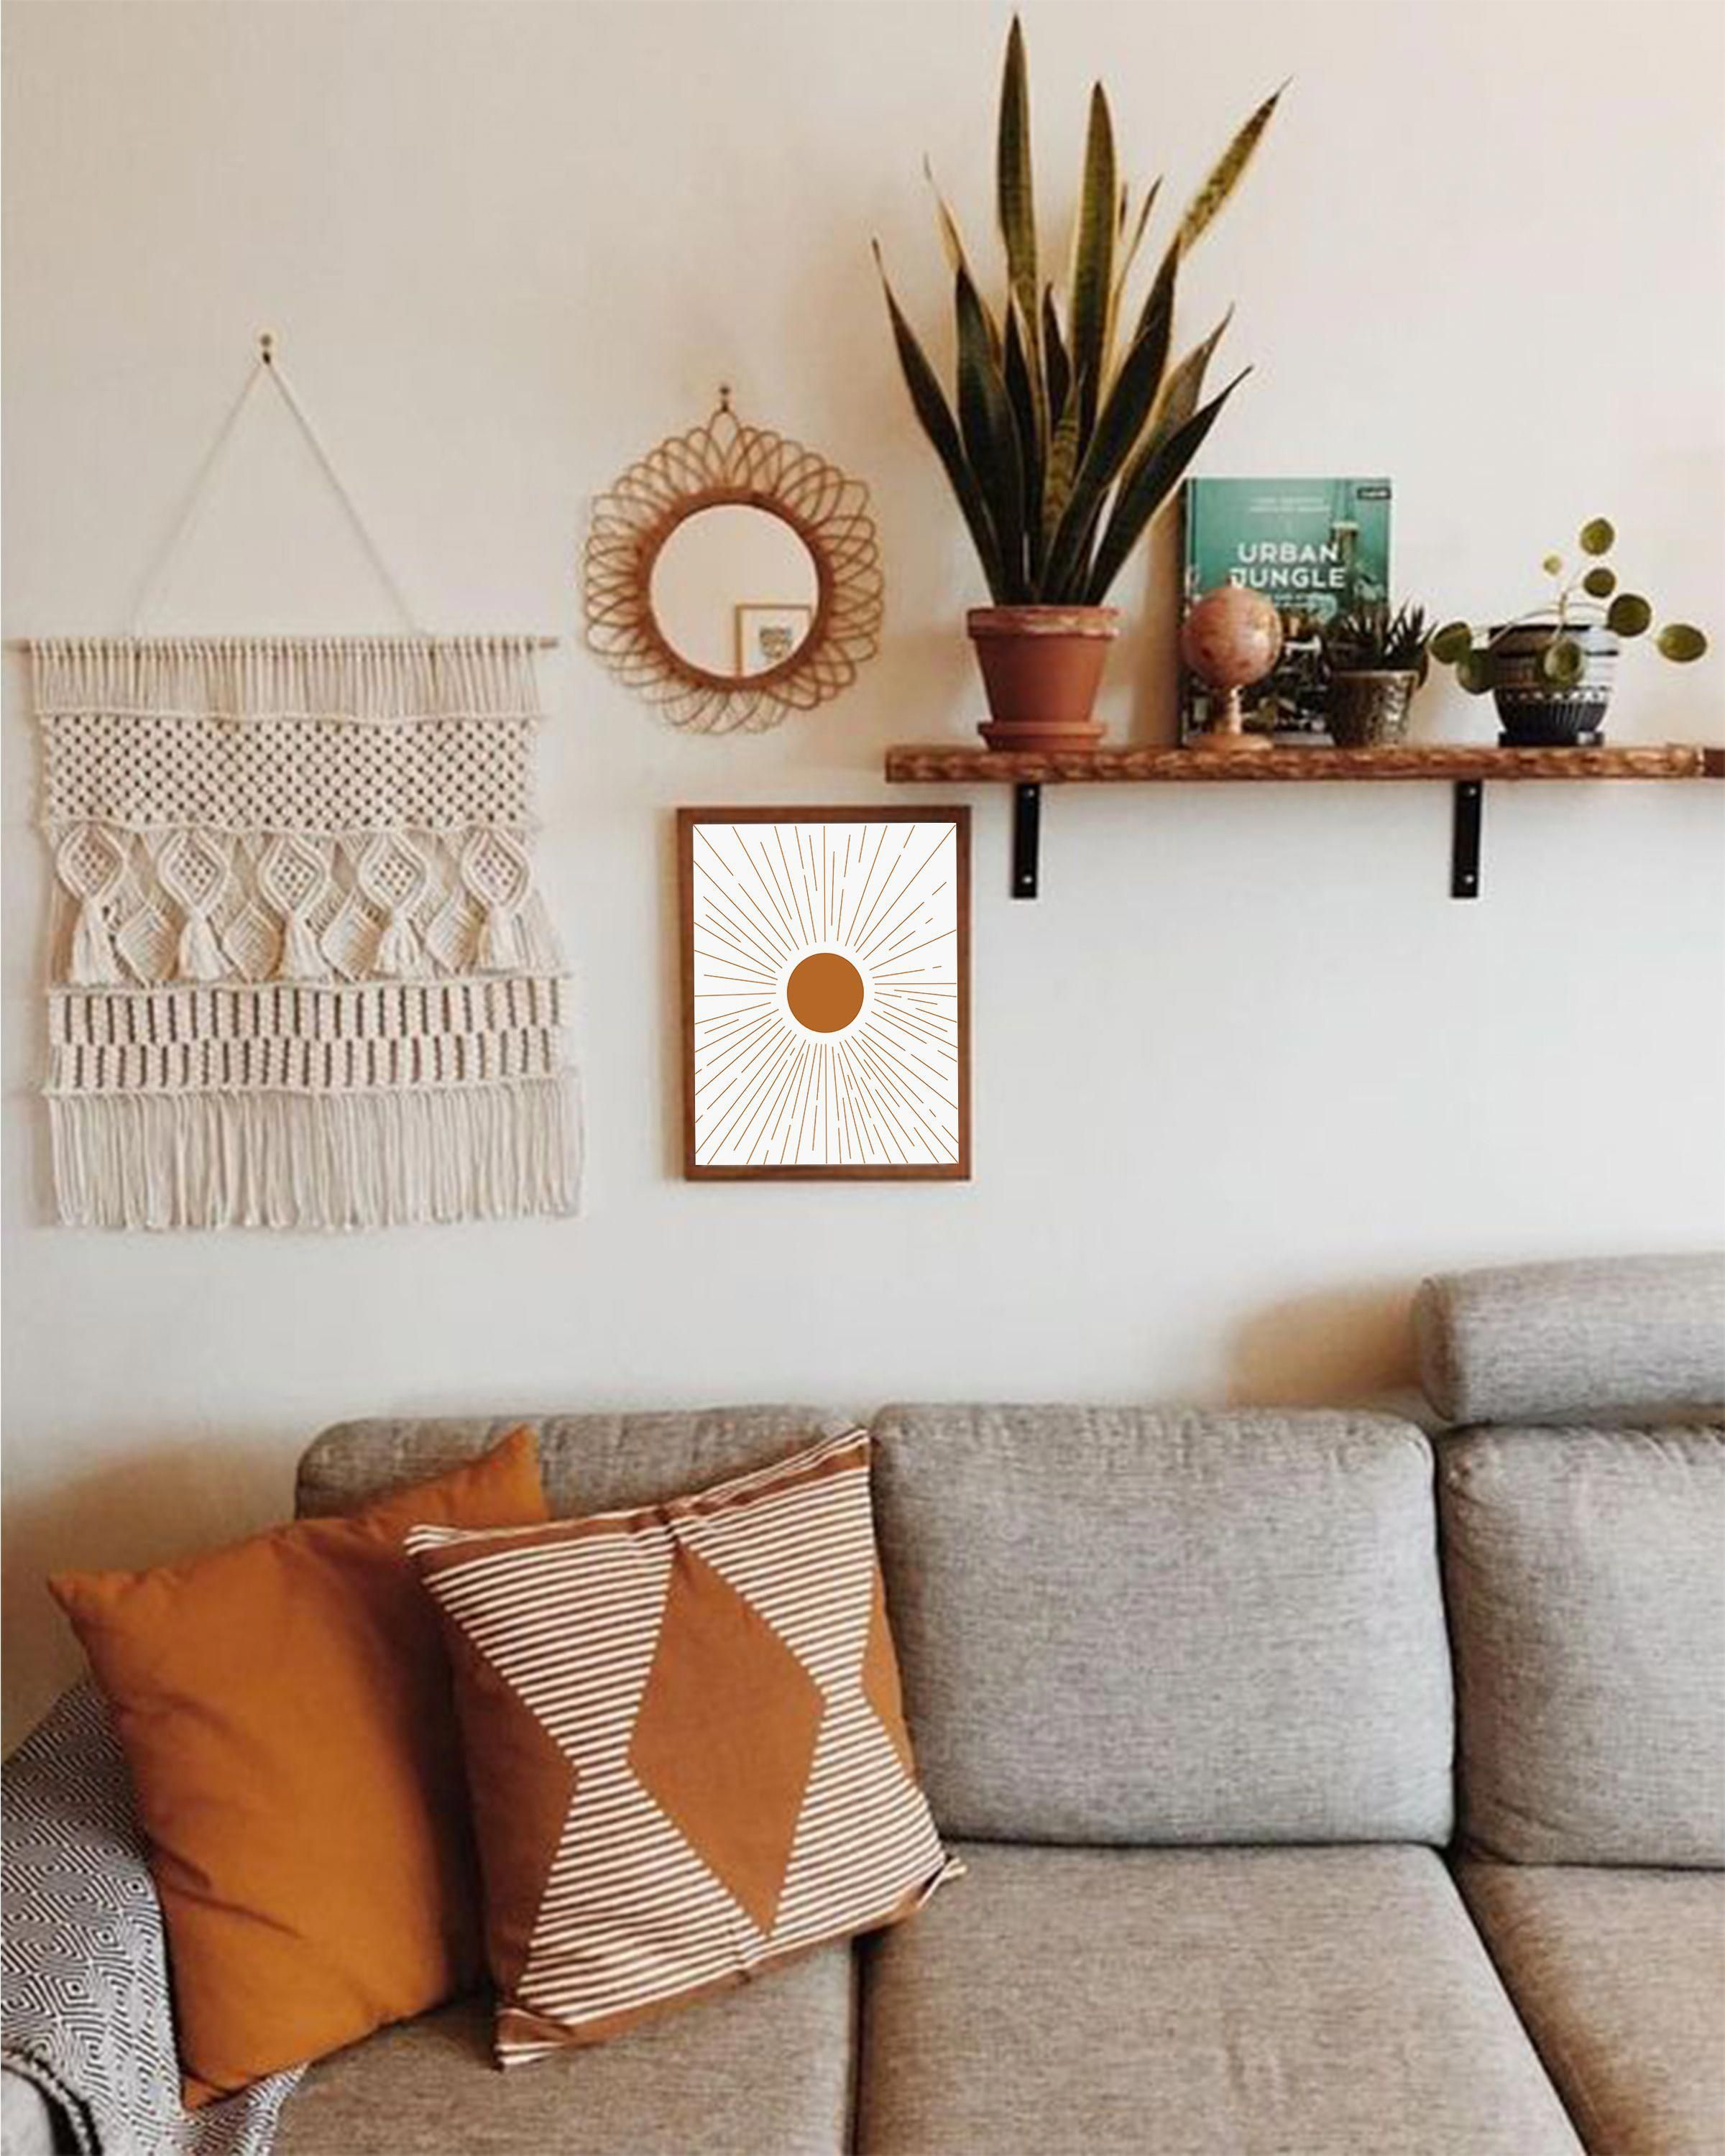 Boho Library Wall Living Room: Pin By Hannah Wessinger On Living Room Decor In 2020